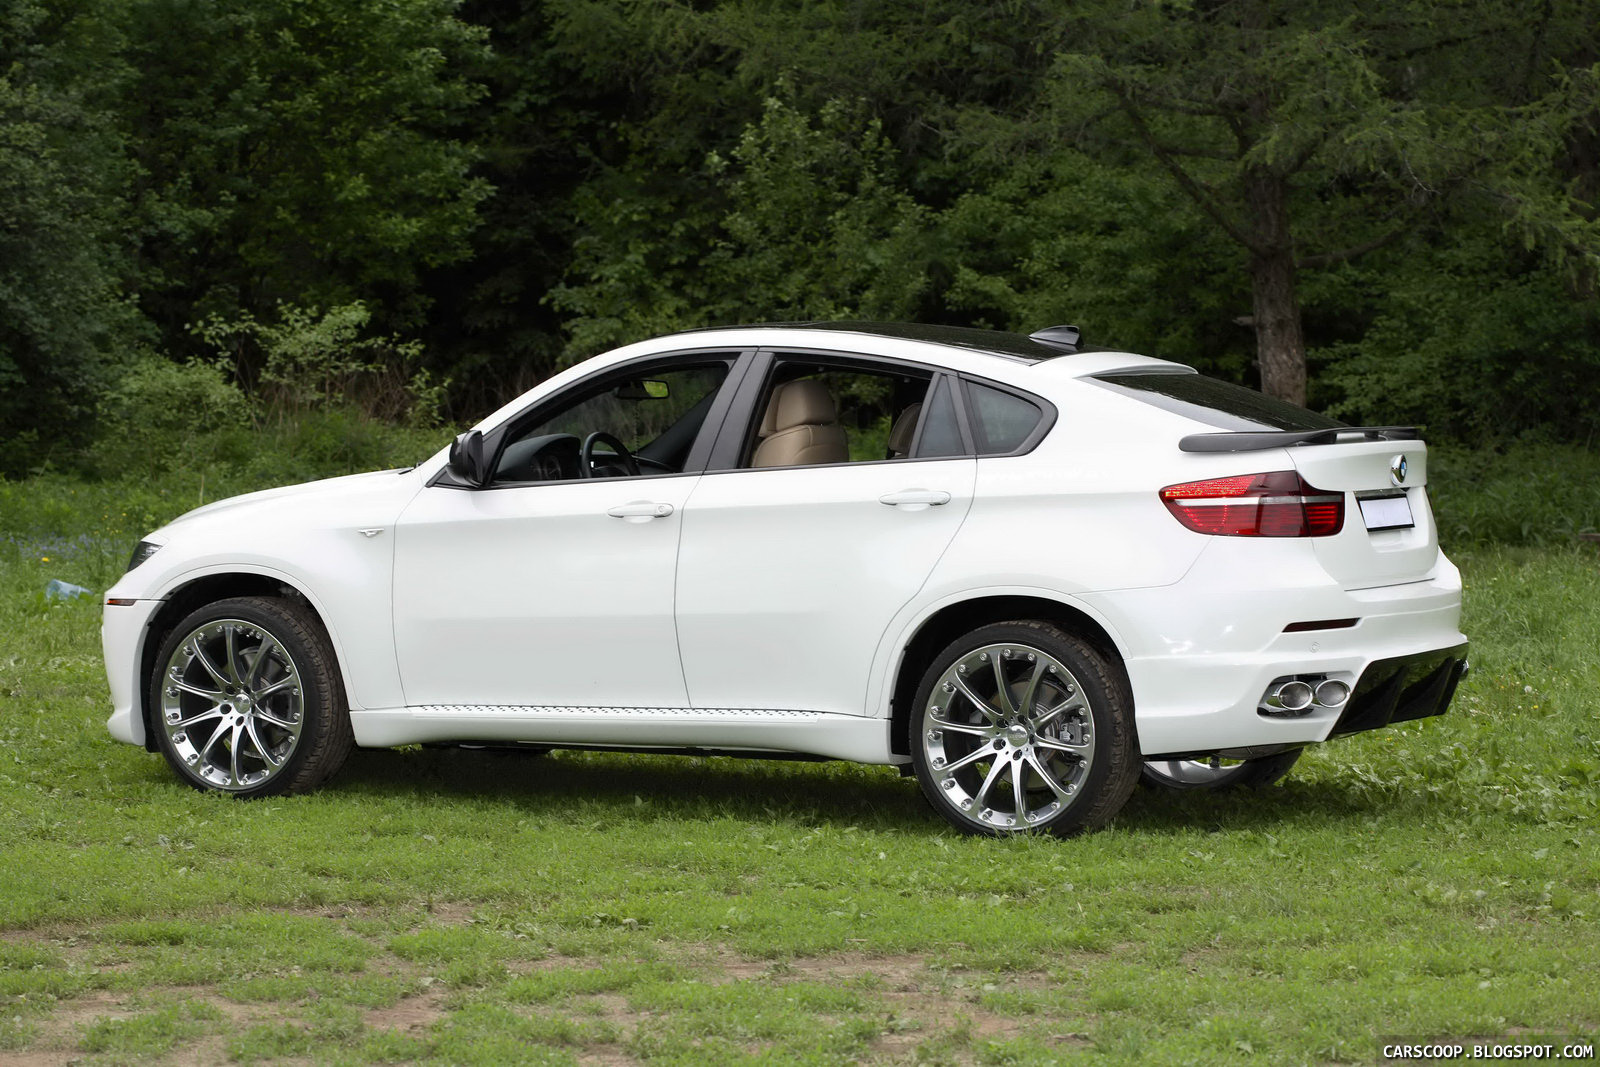 Russian Tuner Status Design Does The Bmw X6 Sav